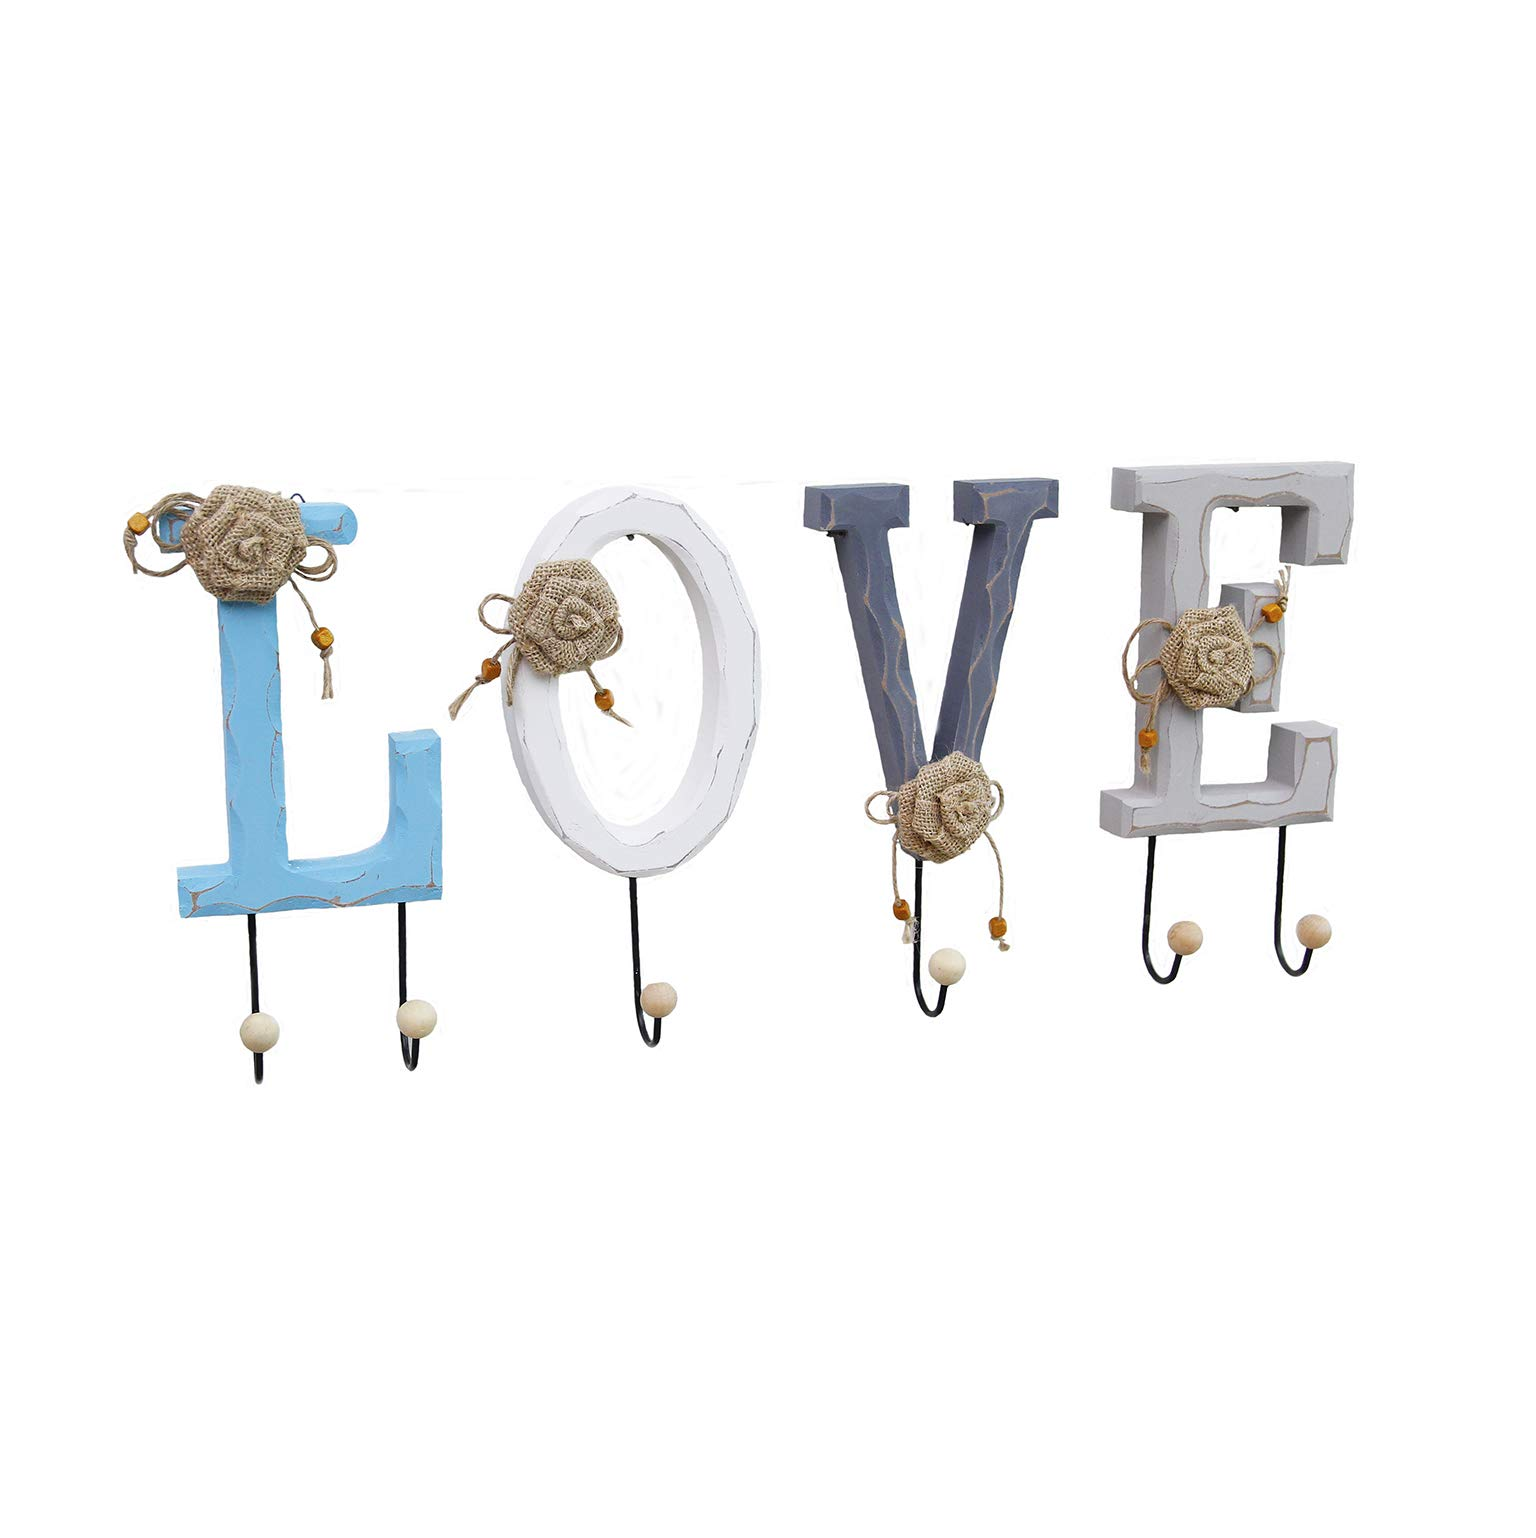 Sweet FanMuLin Rustic Distressed Wooden Creative Letter Home/Love Design Decorative Wall Mounted Coat Rack with 6 Metal Hooks (Love)